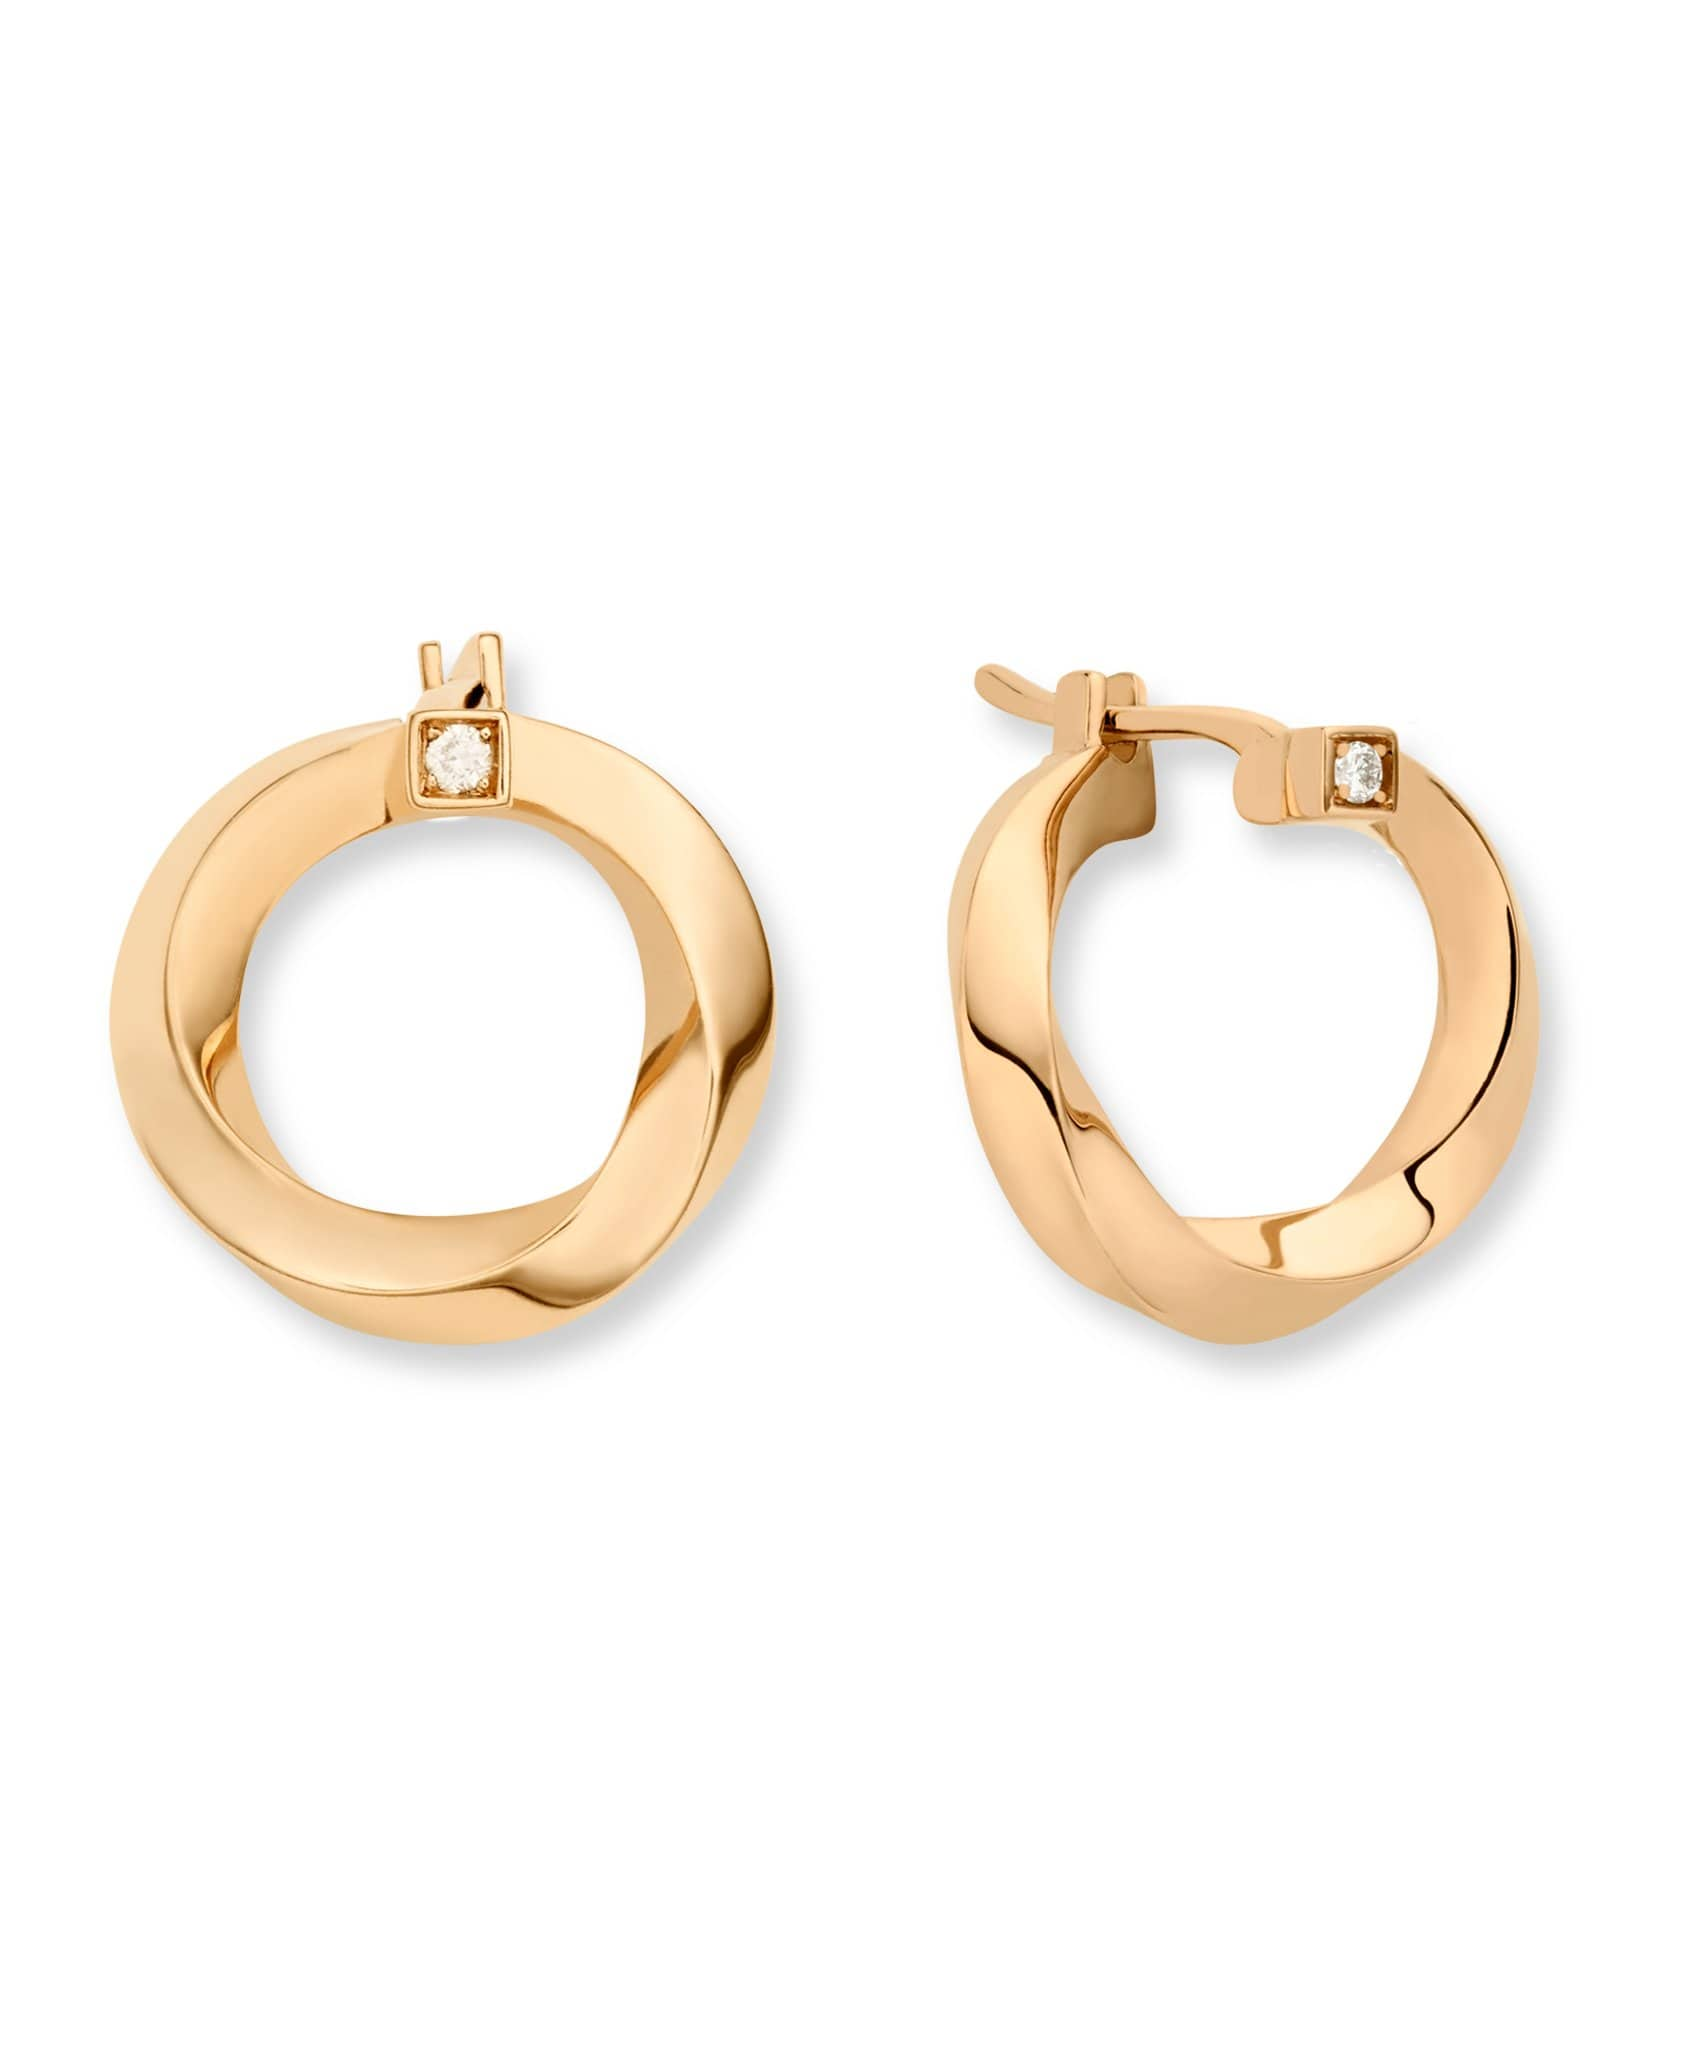 Gold Thread Earrings: Discover Luxury Fine Jewelry | Nouvel Heritage